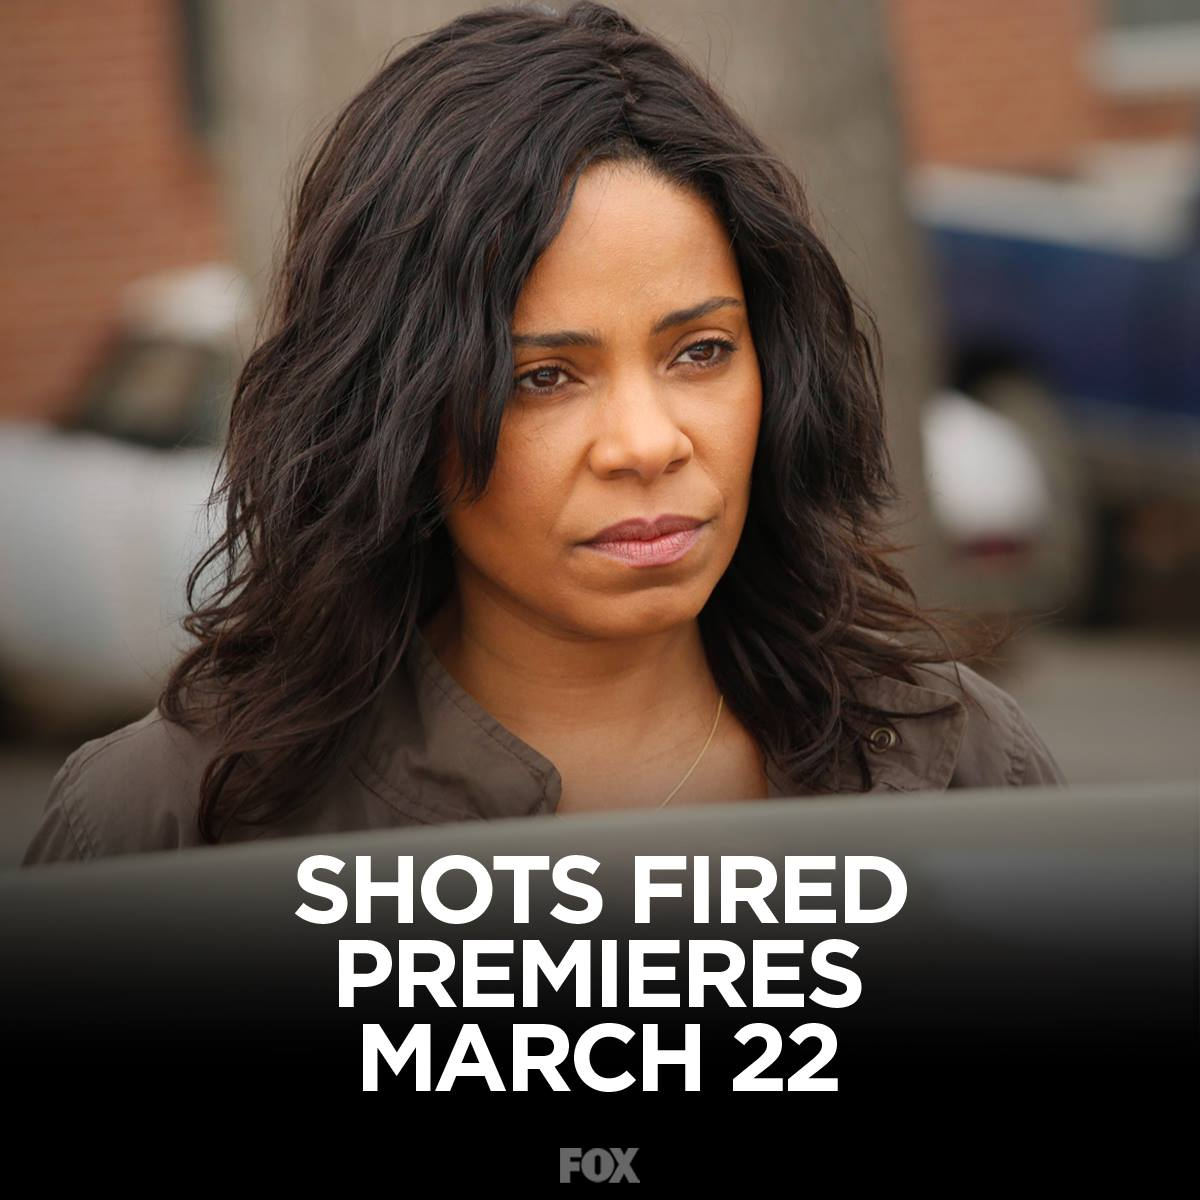 shots-fired-premieres-march-22